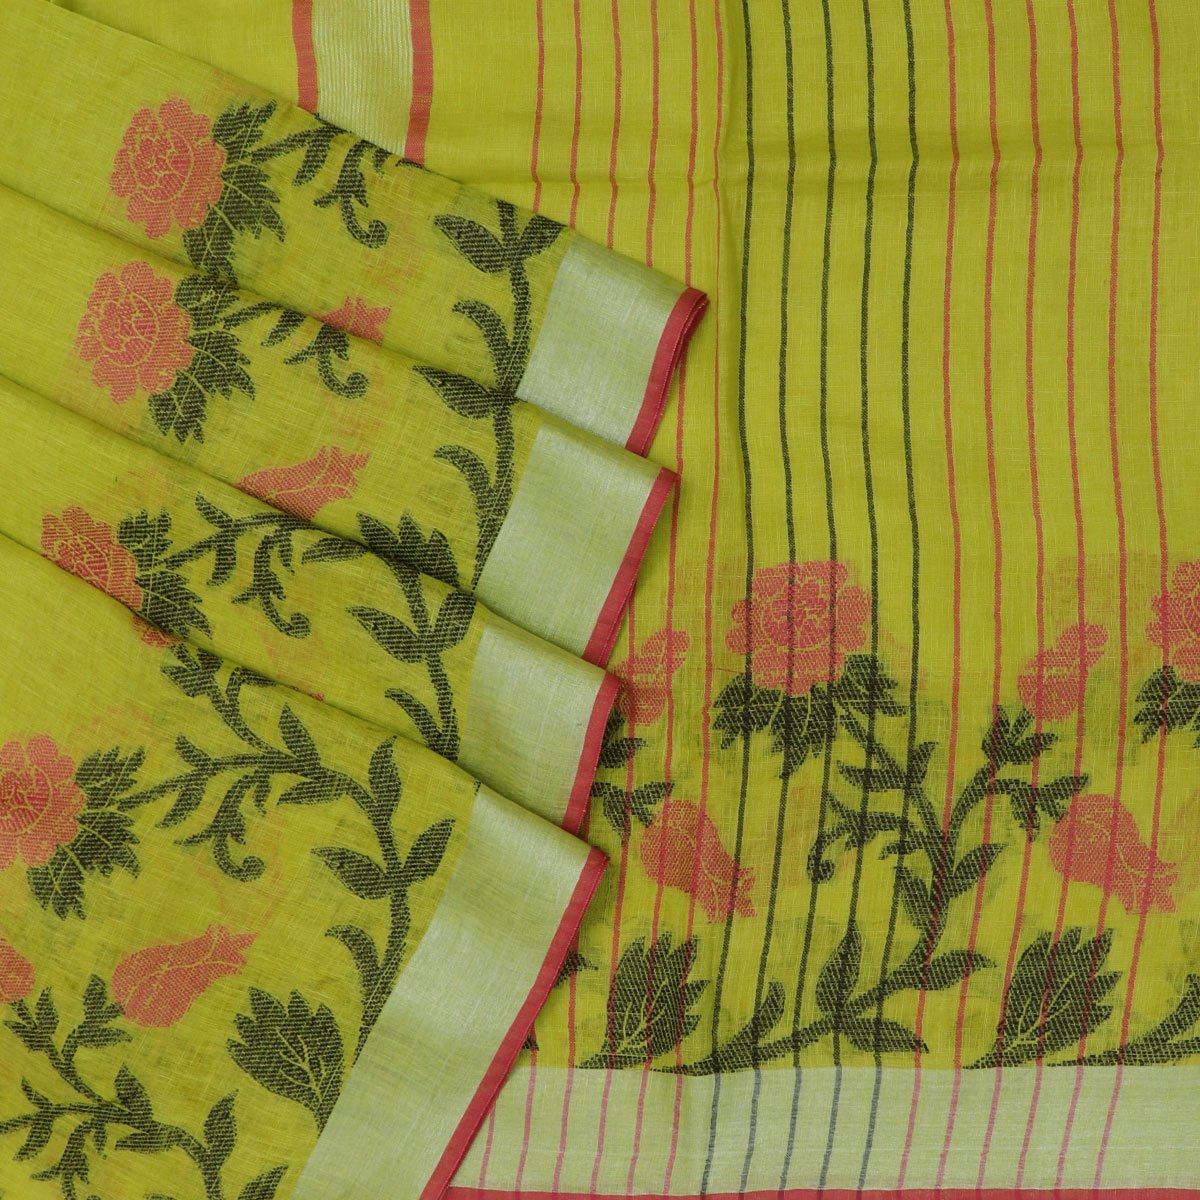 Linen Saree Pista Green with Leaf thread design and Simple border